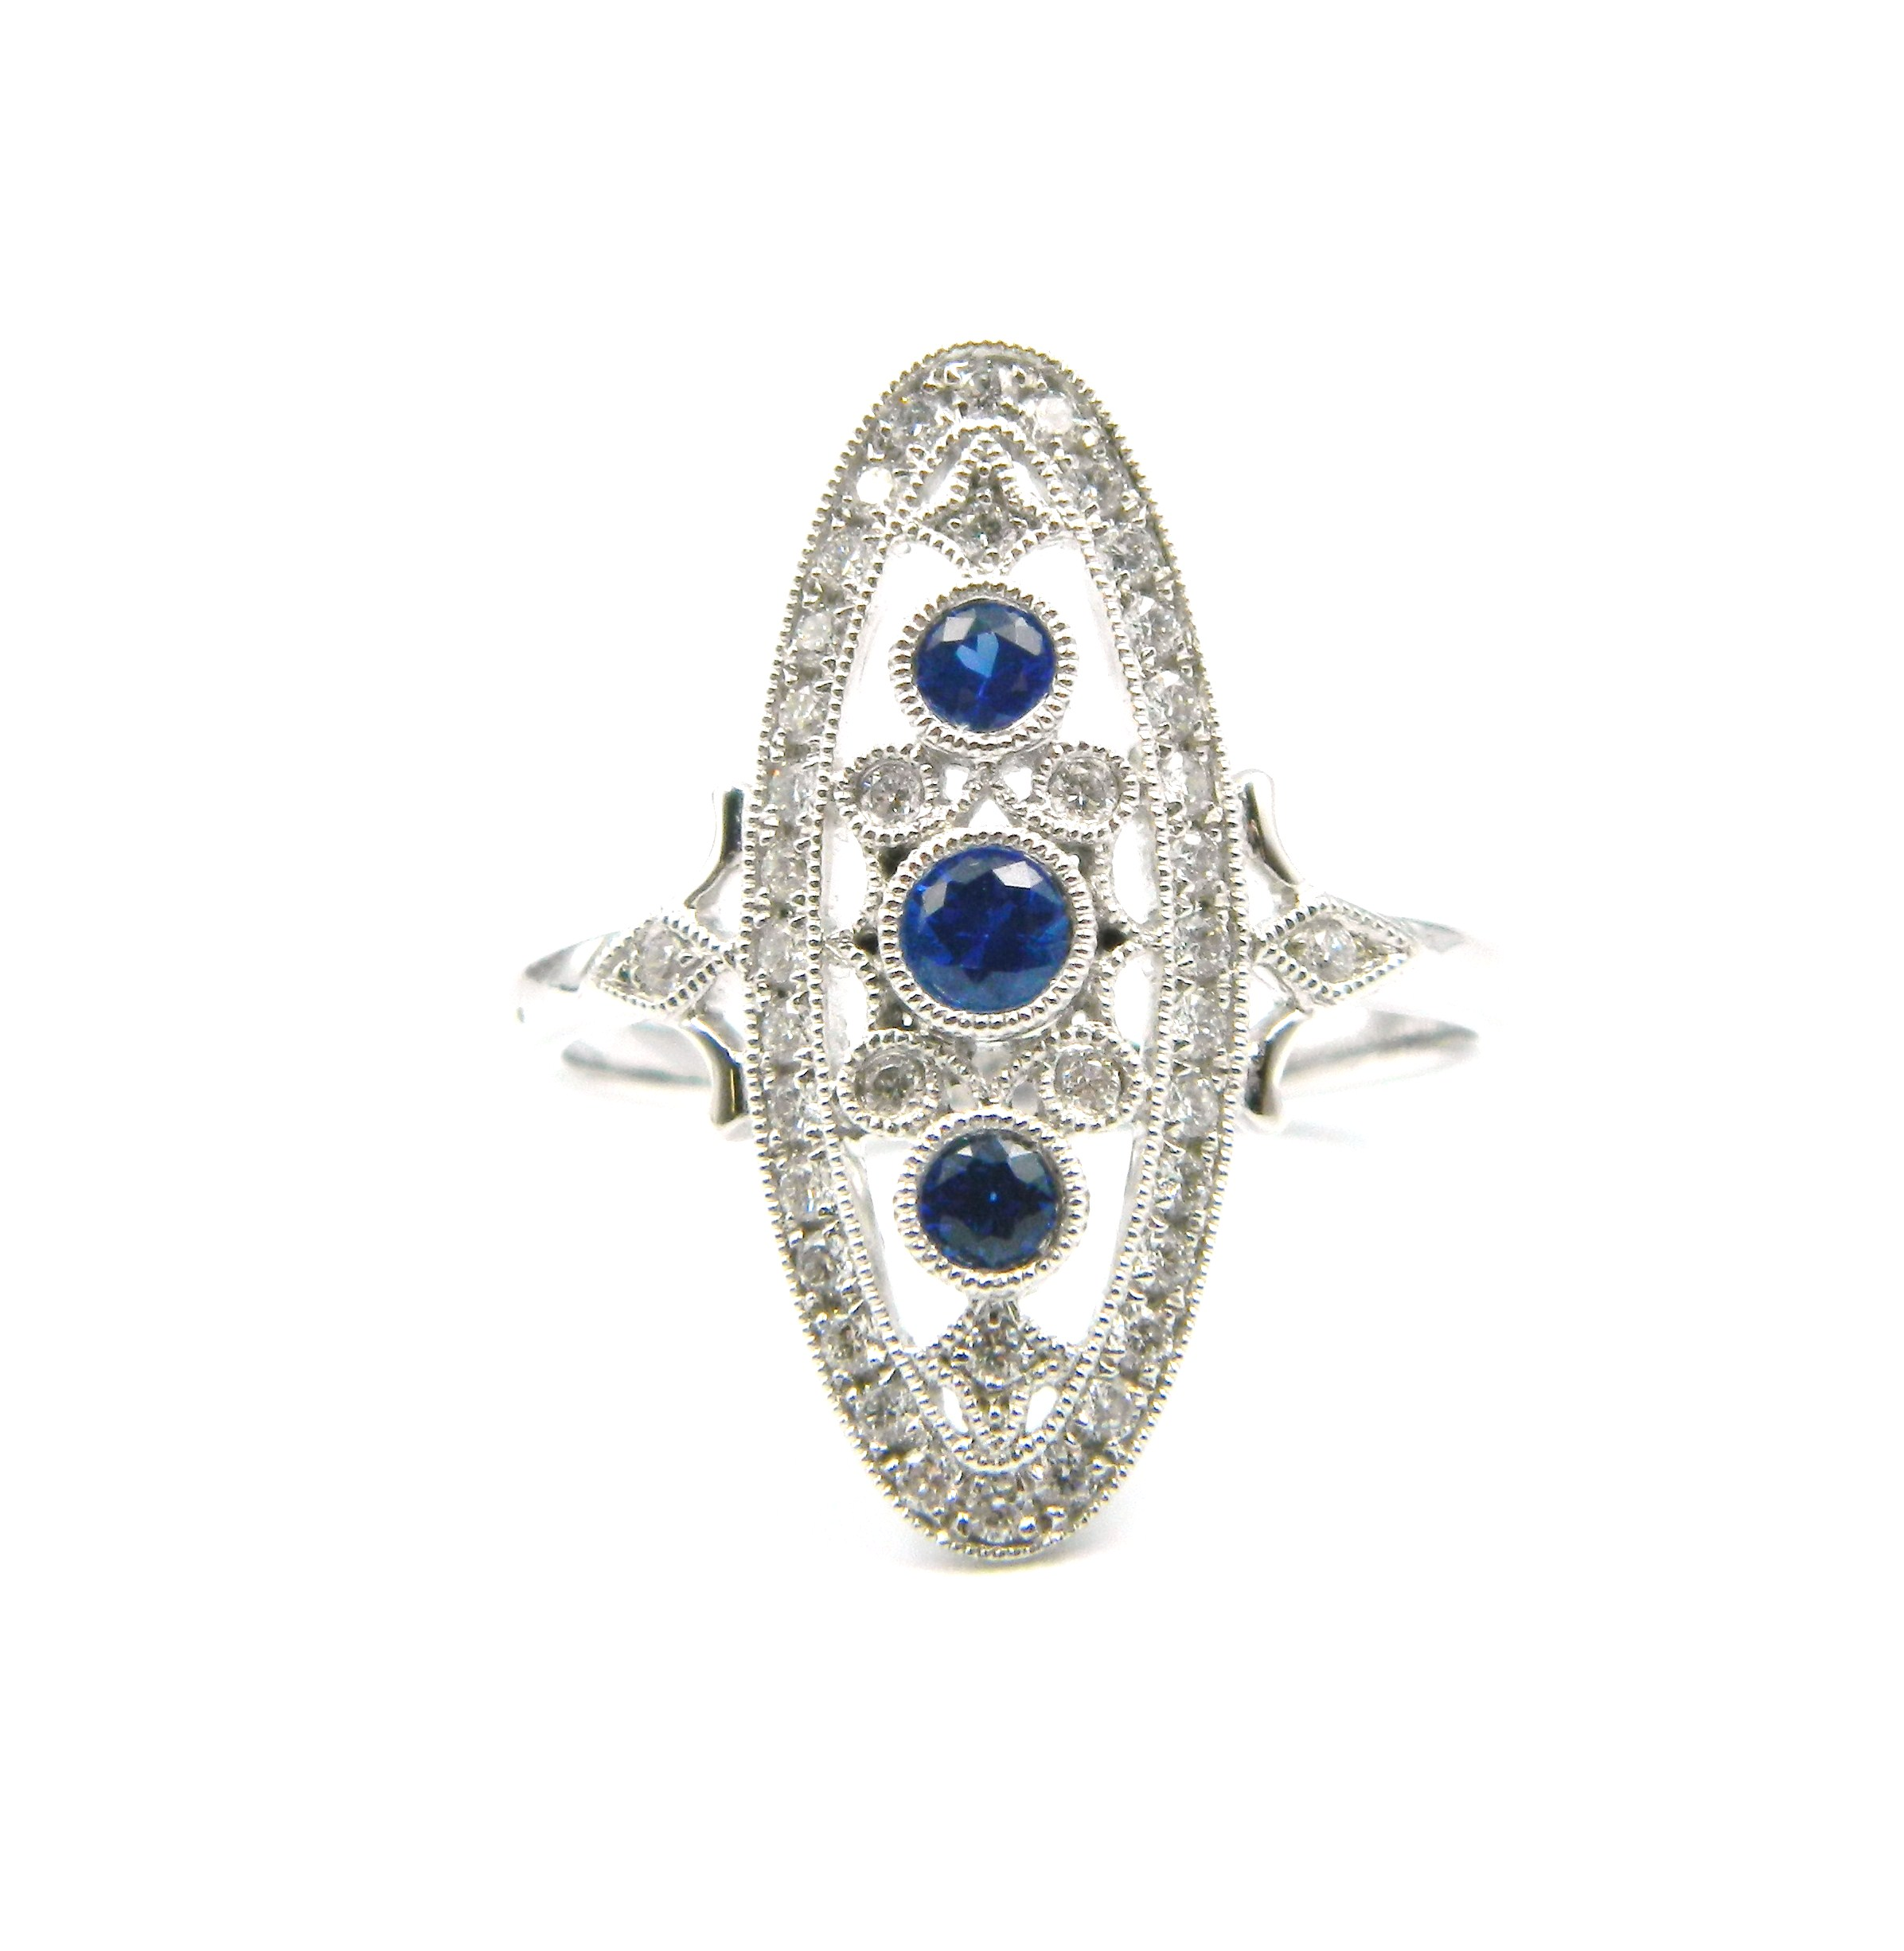 White Gold Antique-Inspired Sapphire Ring